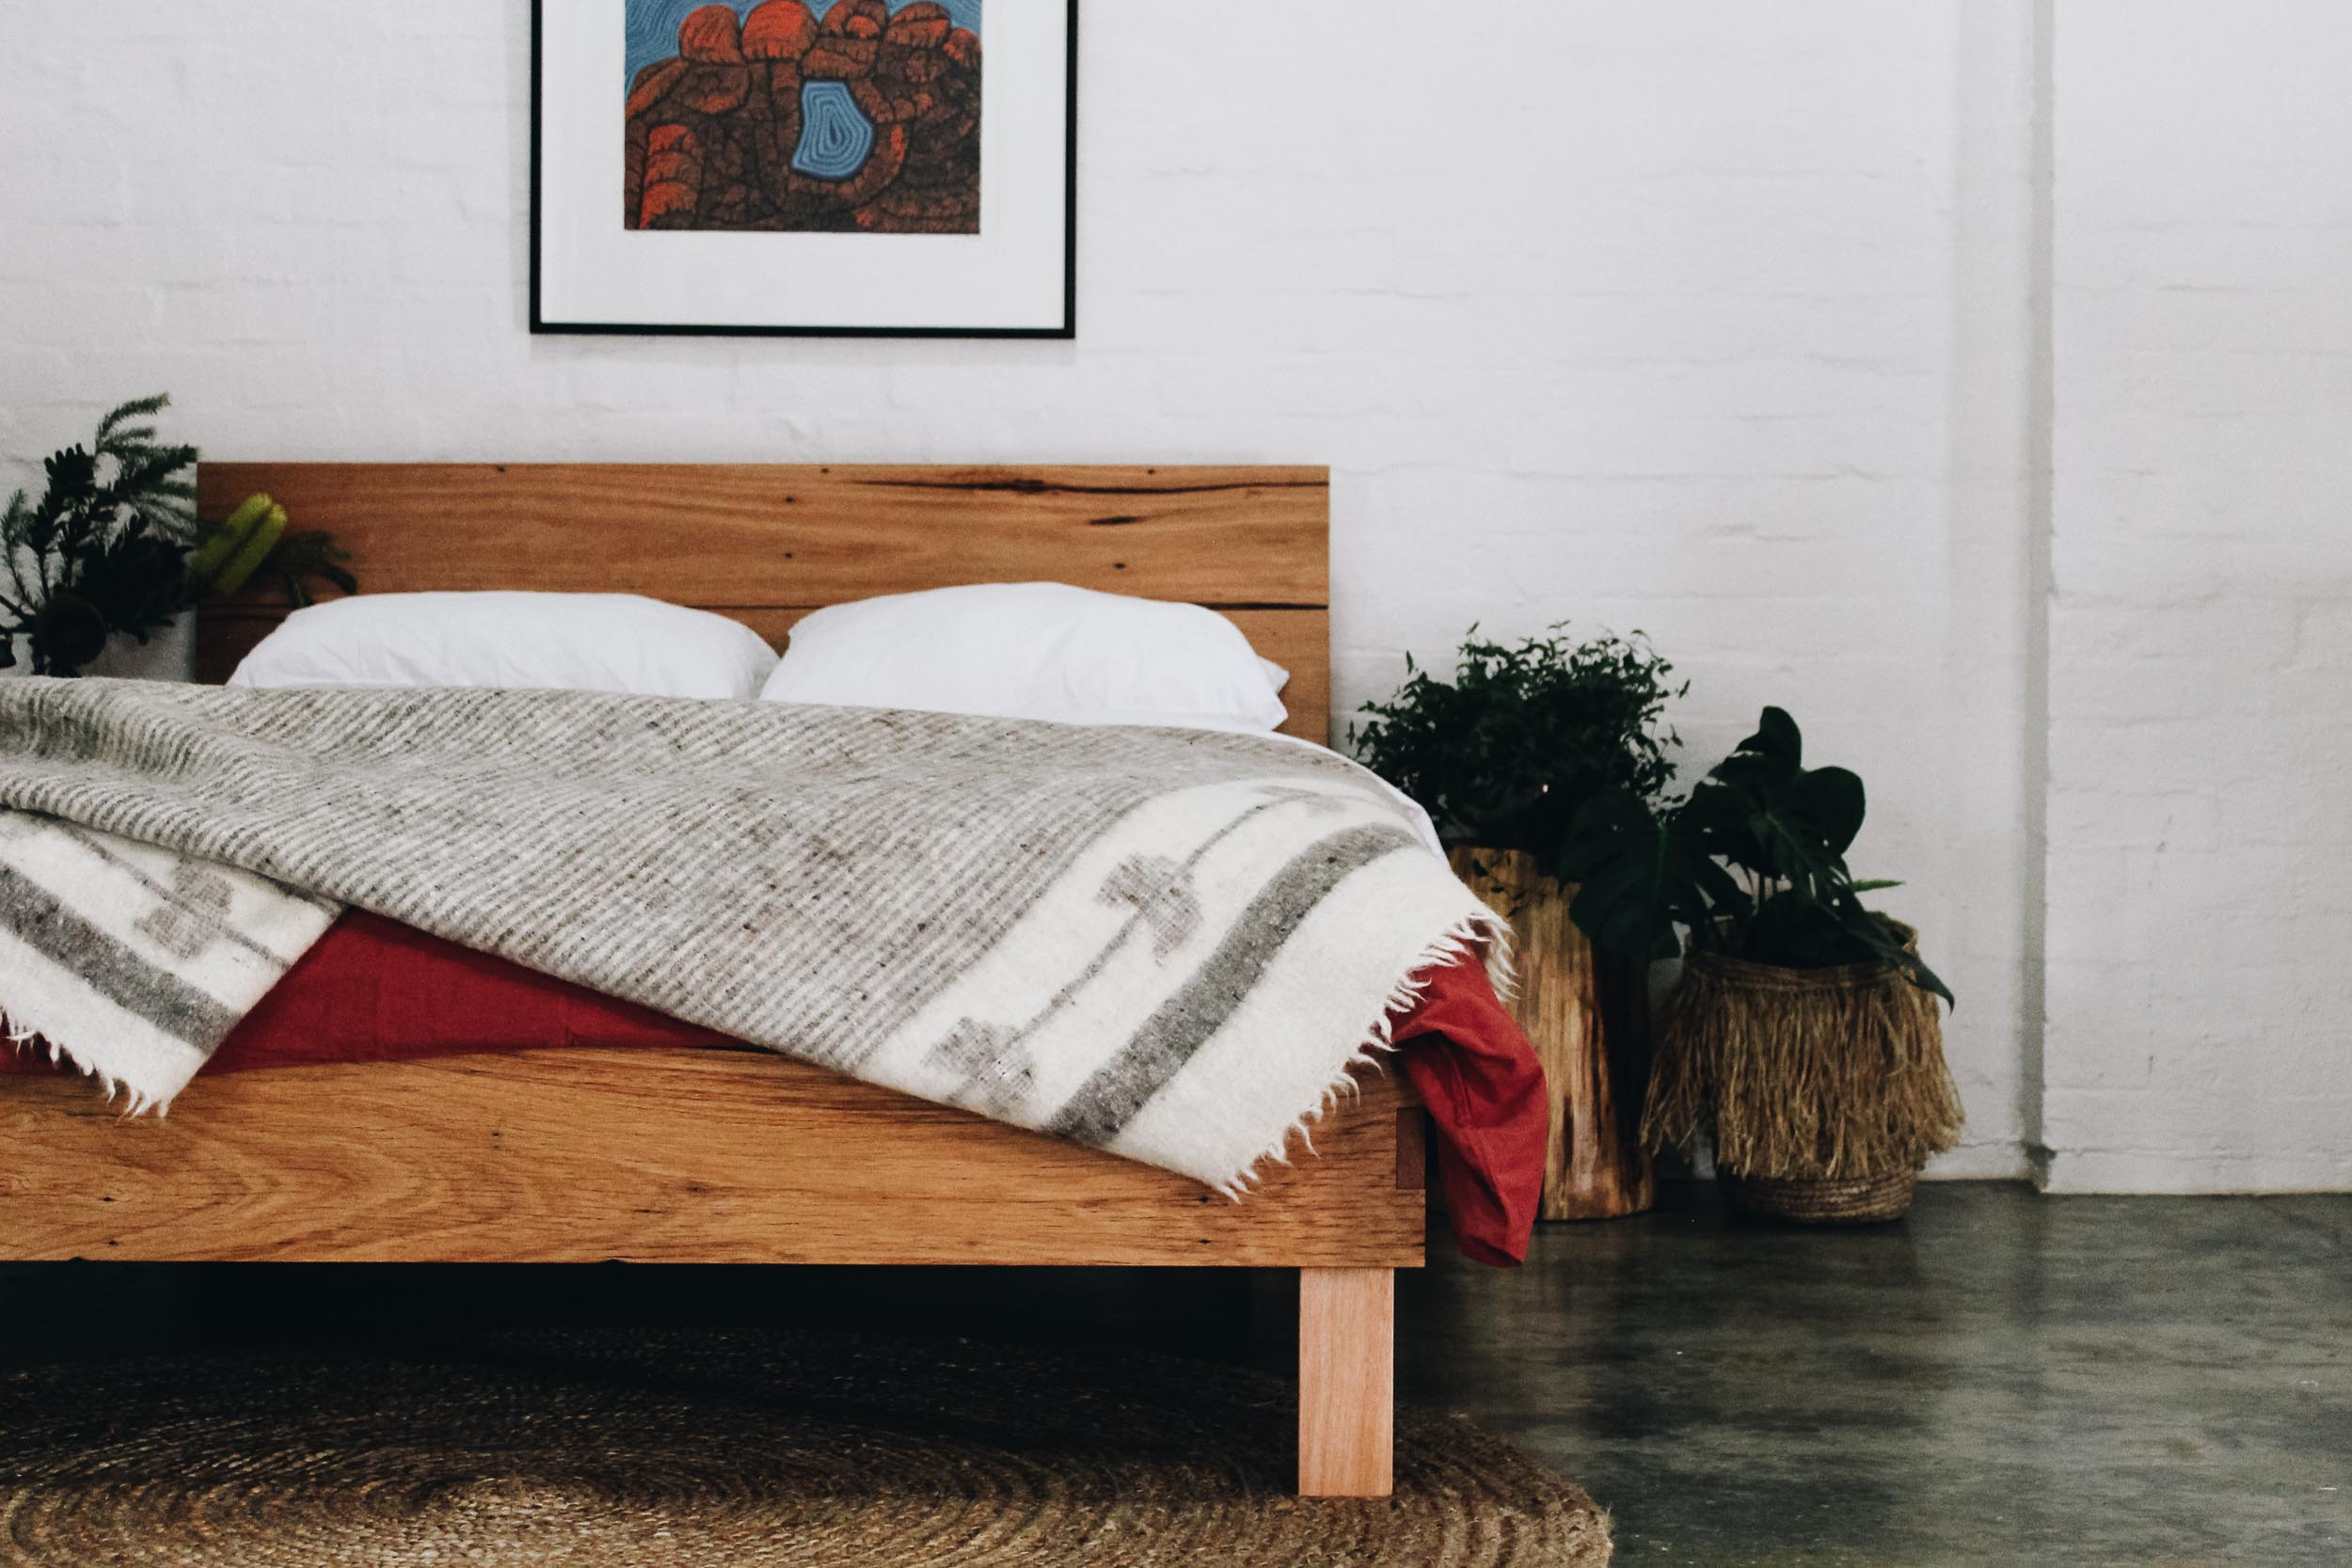 Al and Imo Handmade - Feature Headboard Square Bed - Surf Coast - Melbourne - Australia.jpg